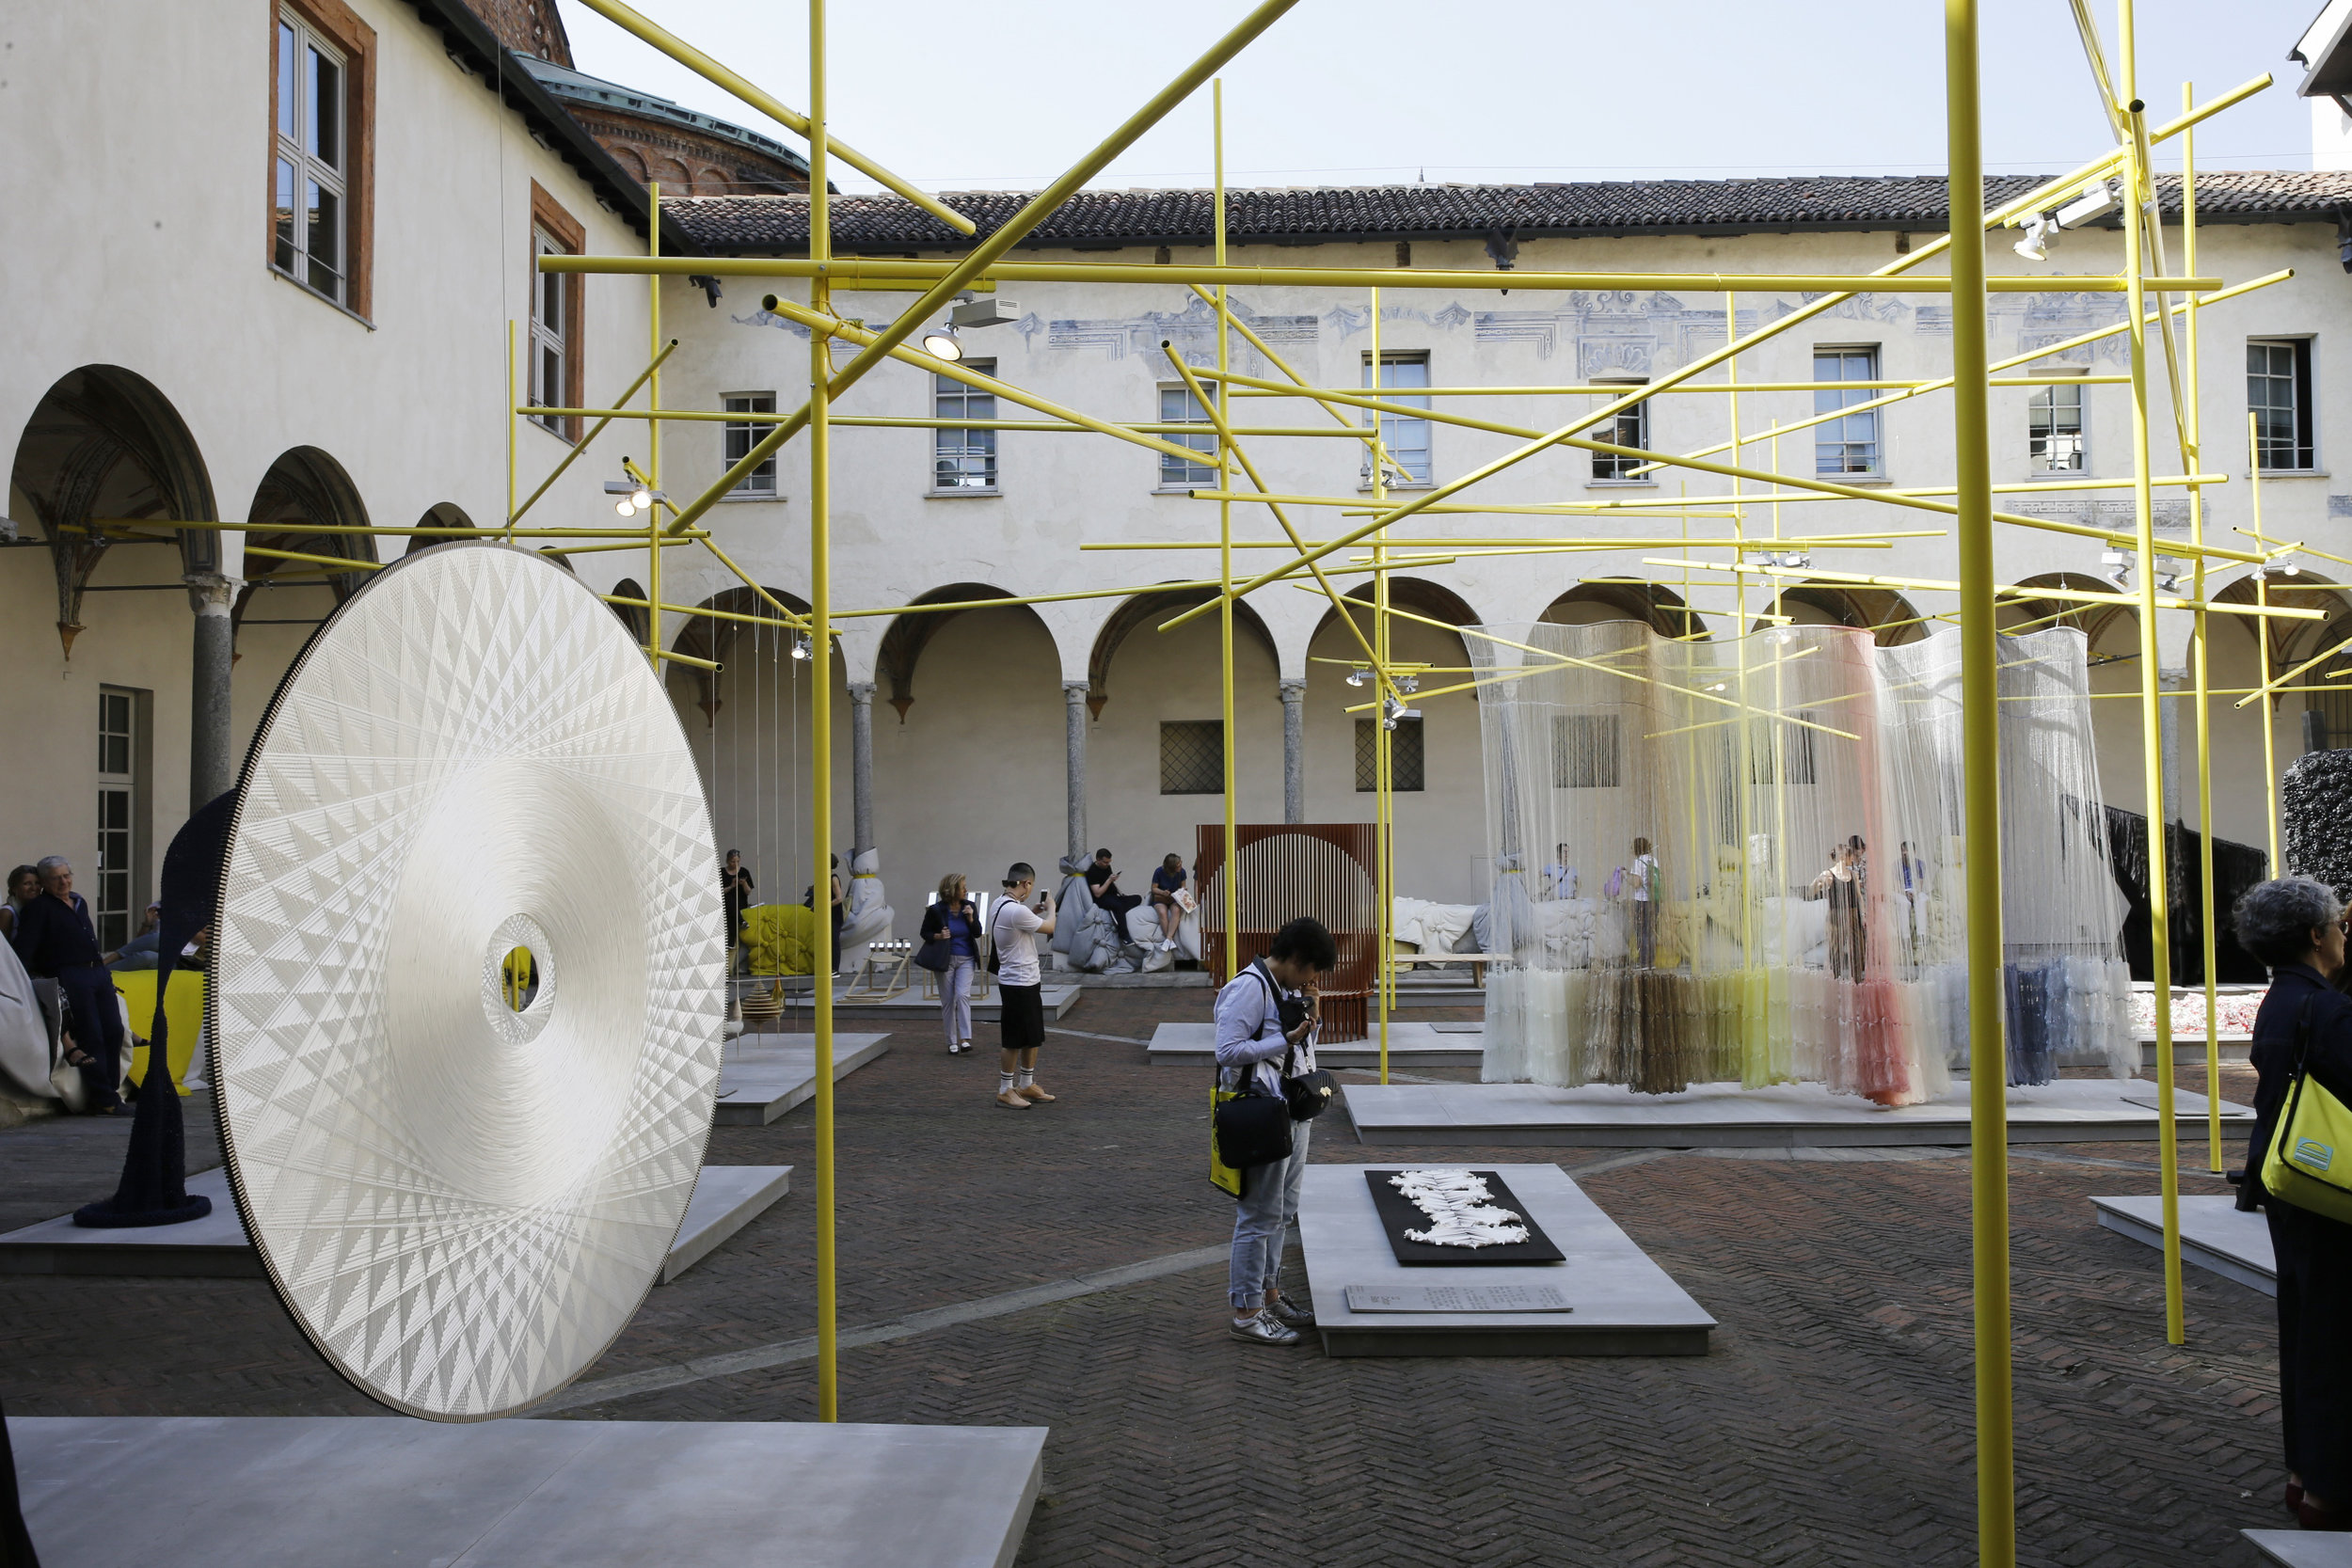 Local architects Mosca Partners curated a series of installations at the famous Palazzo Litta